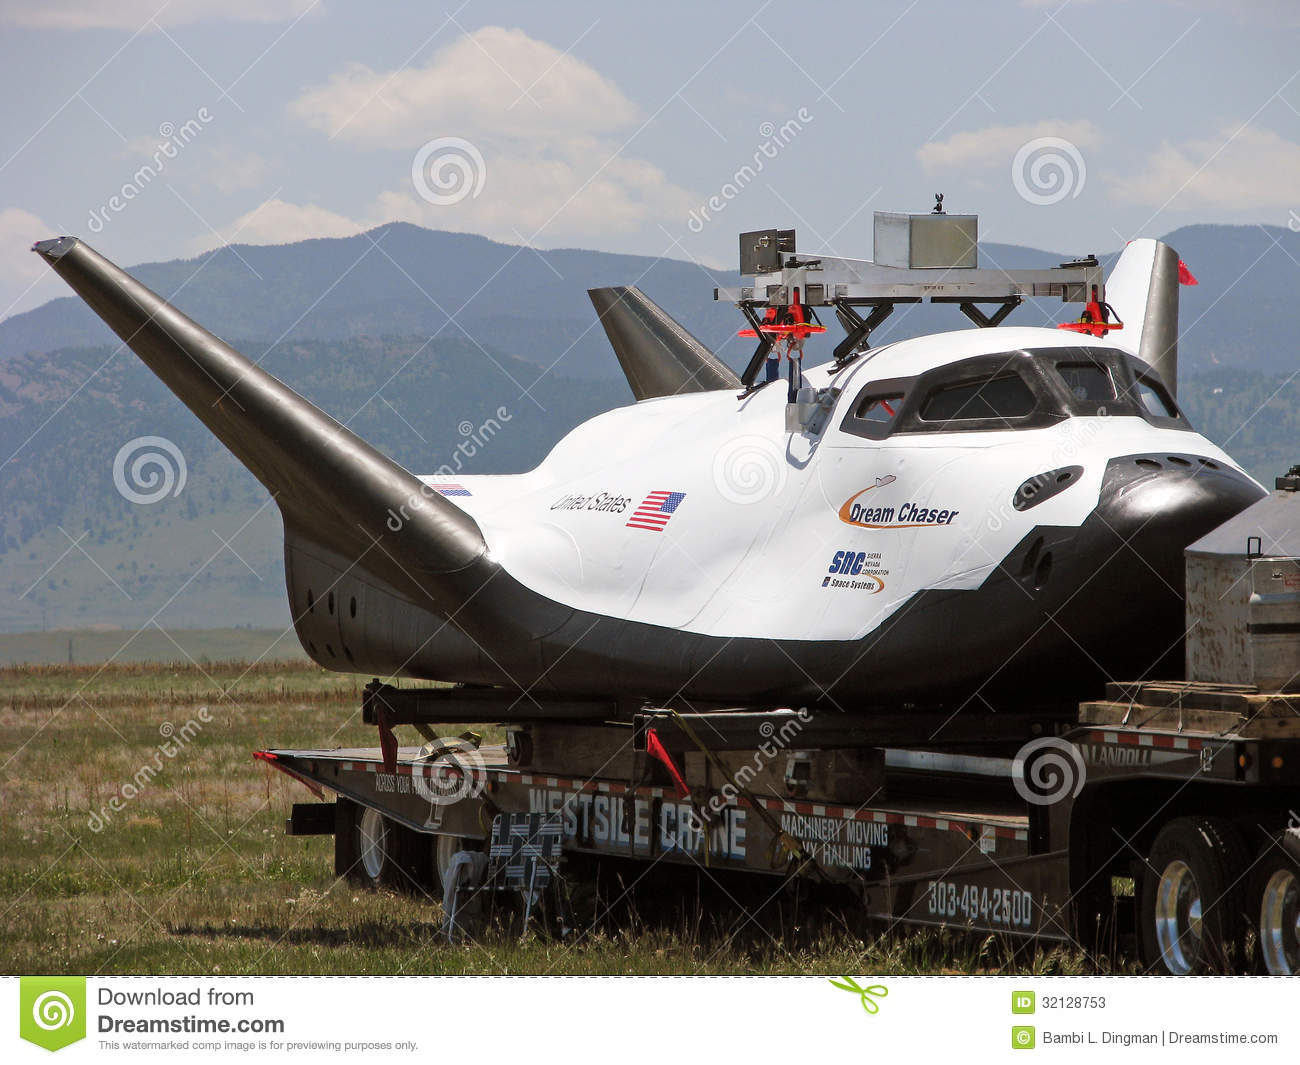 The Dream Chaser Editorial Stock Photo - Image: 32128753